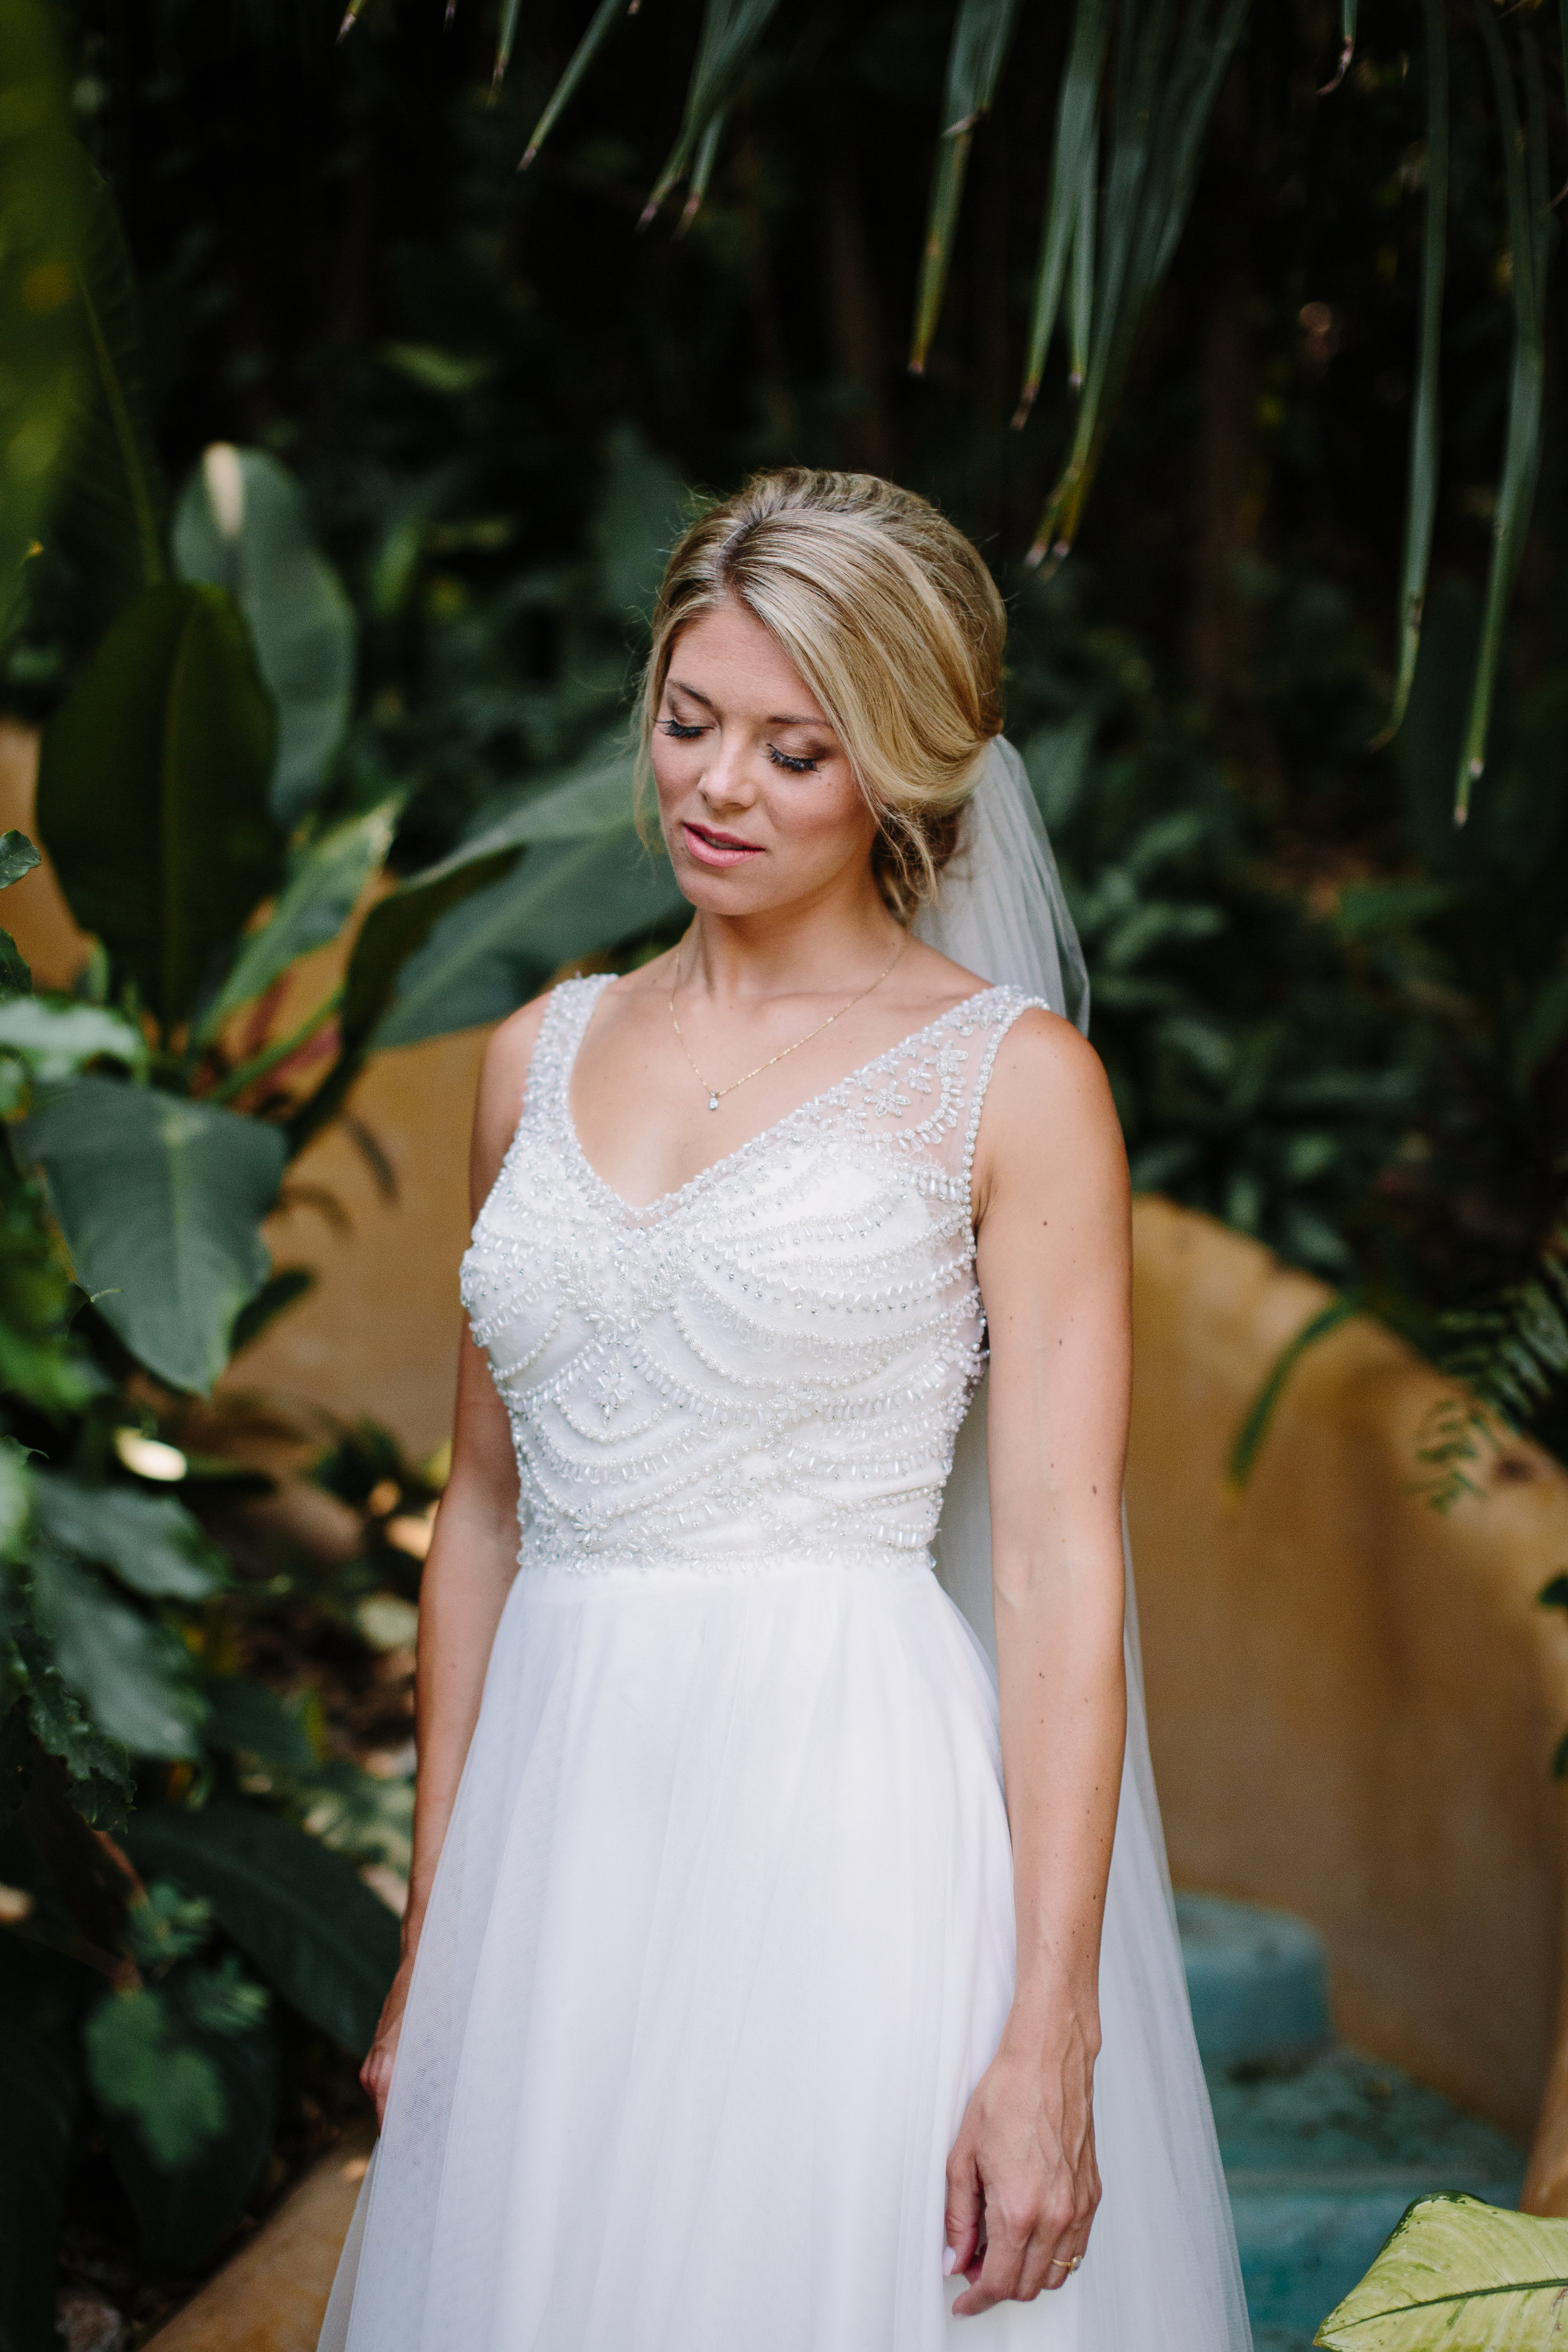 Taryn Baxter Photographer_Jaime+Jay_Wedding-210.jpg